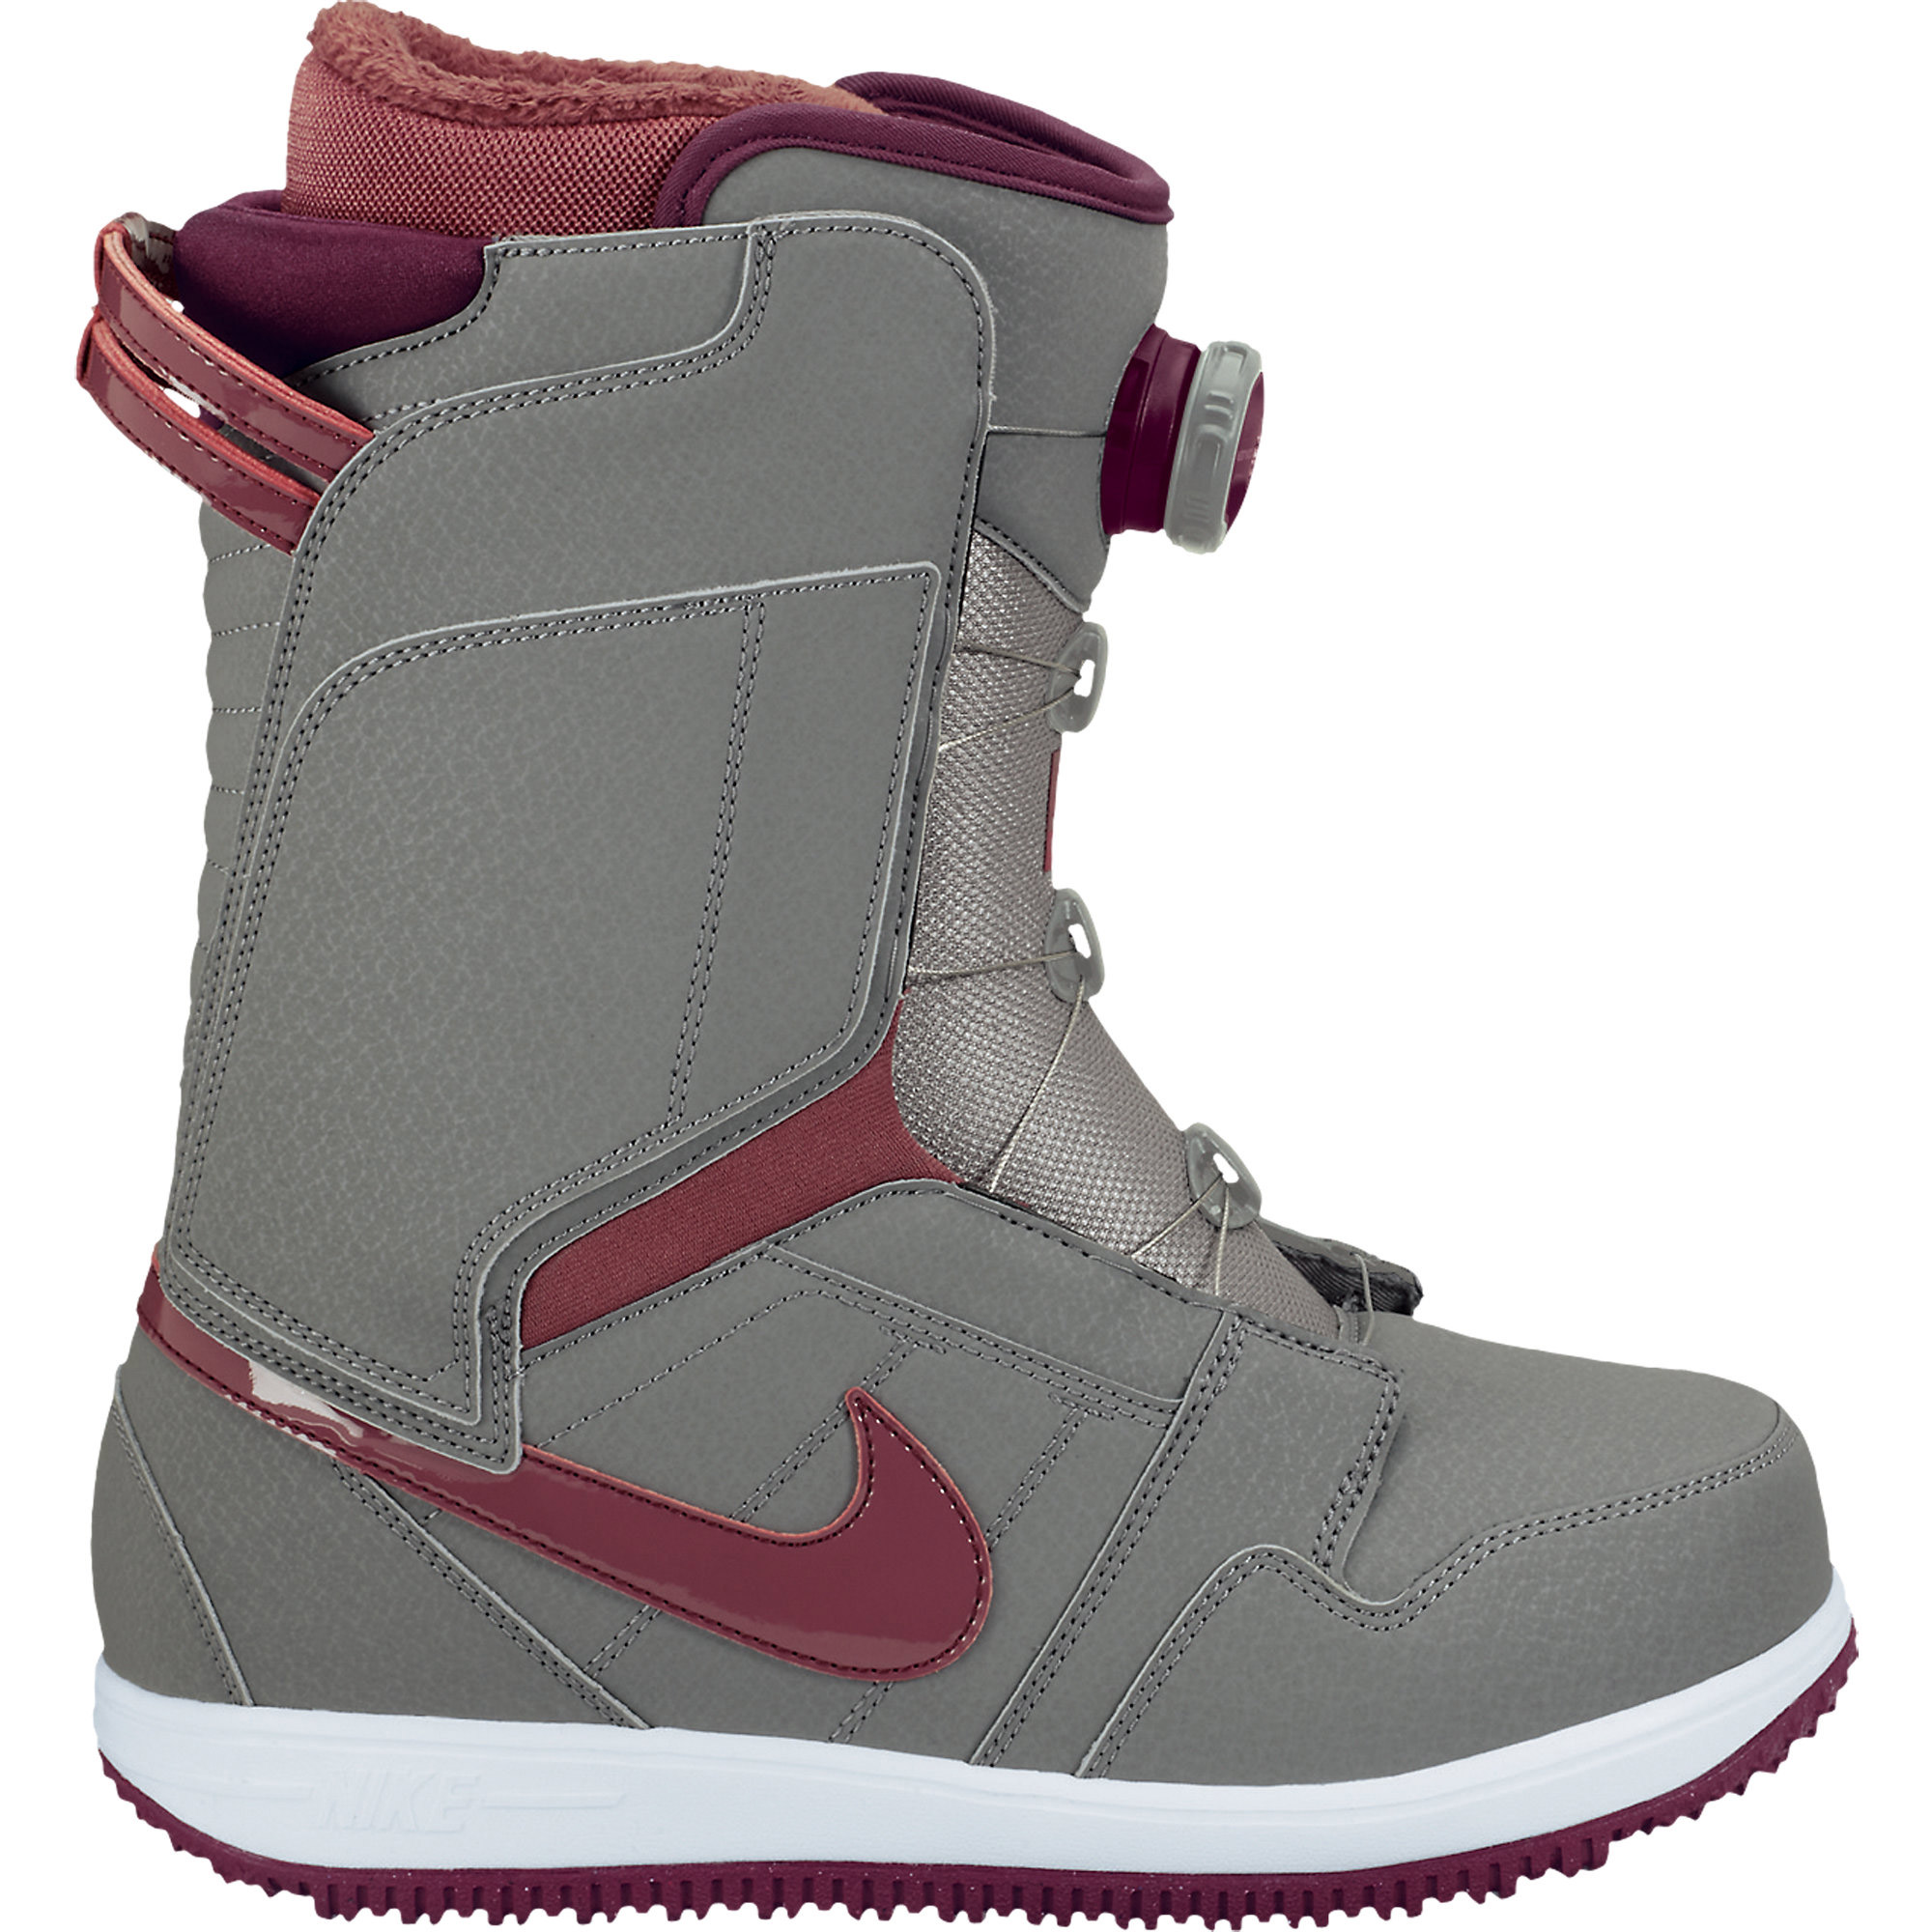 nike womens vapen boa snowboard boot 2014 mount everest